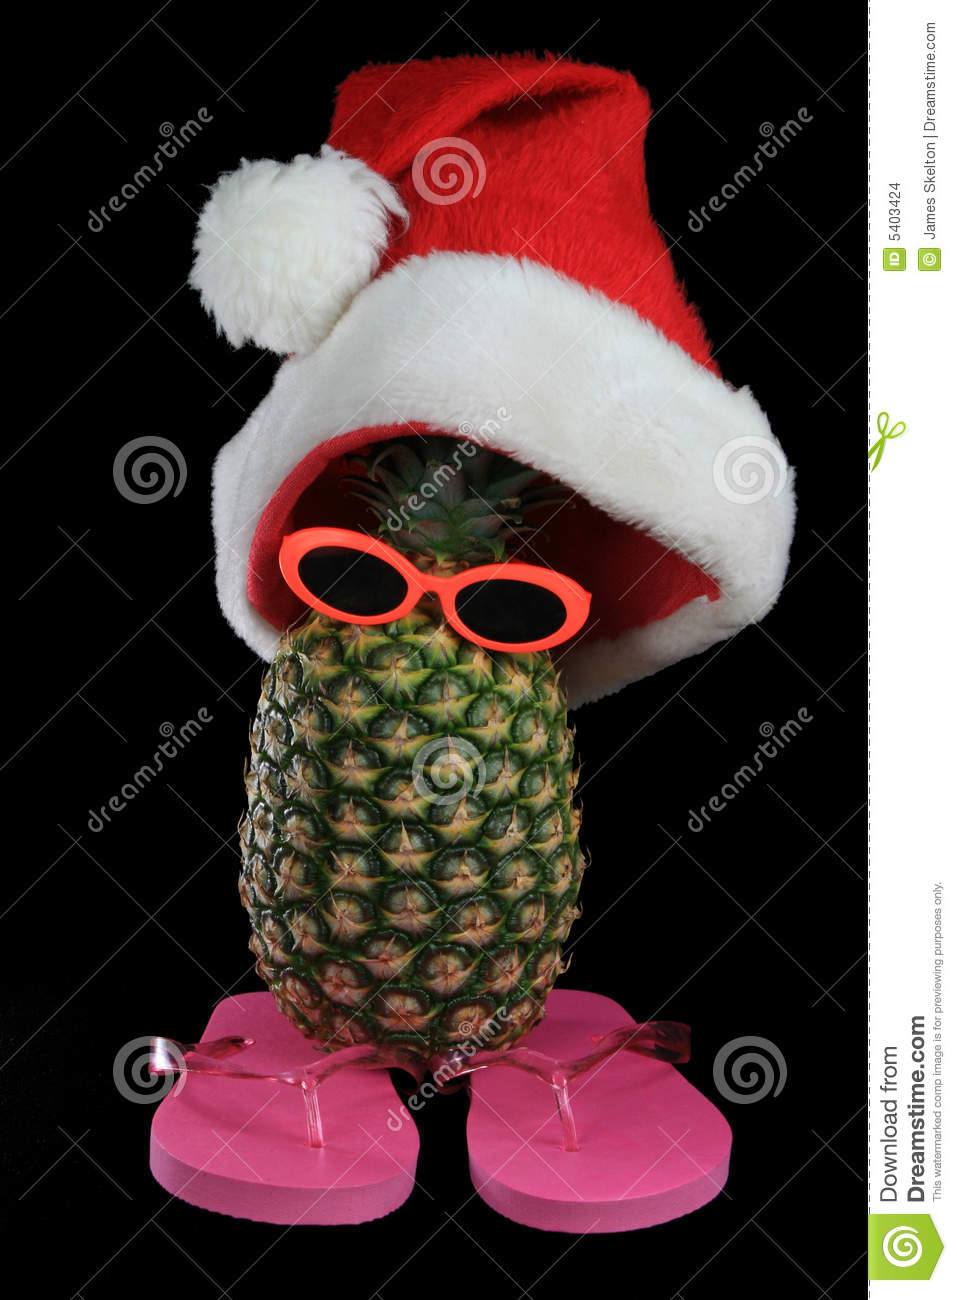 Santa Hat On Silly Pineapple Stock Photo Image 5403424